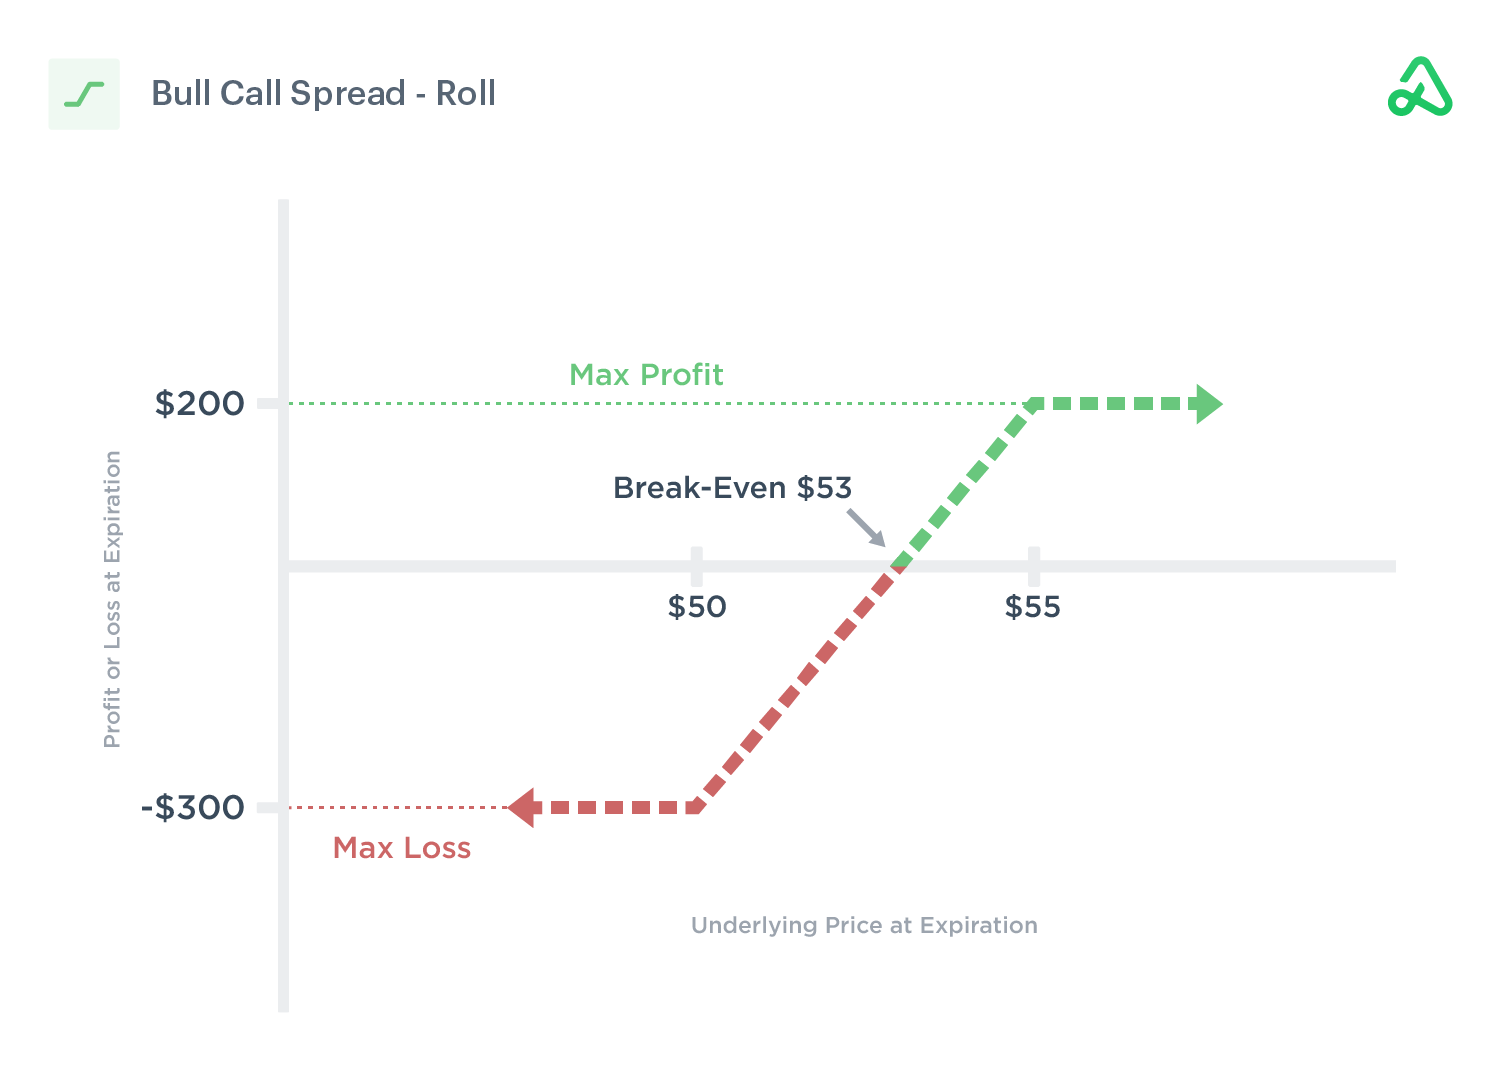 Bull call spread rolled to a later expiration date for a debit